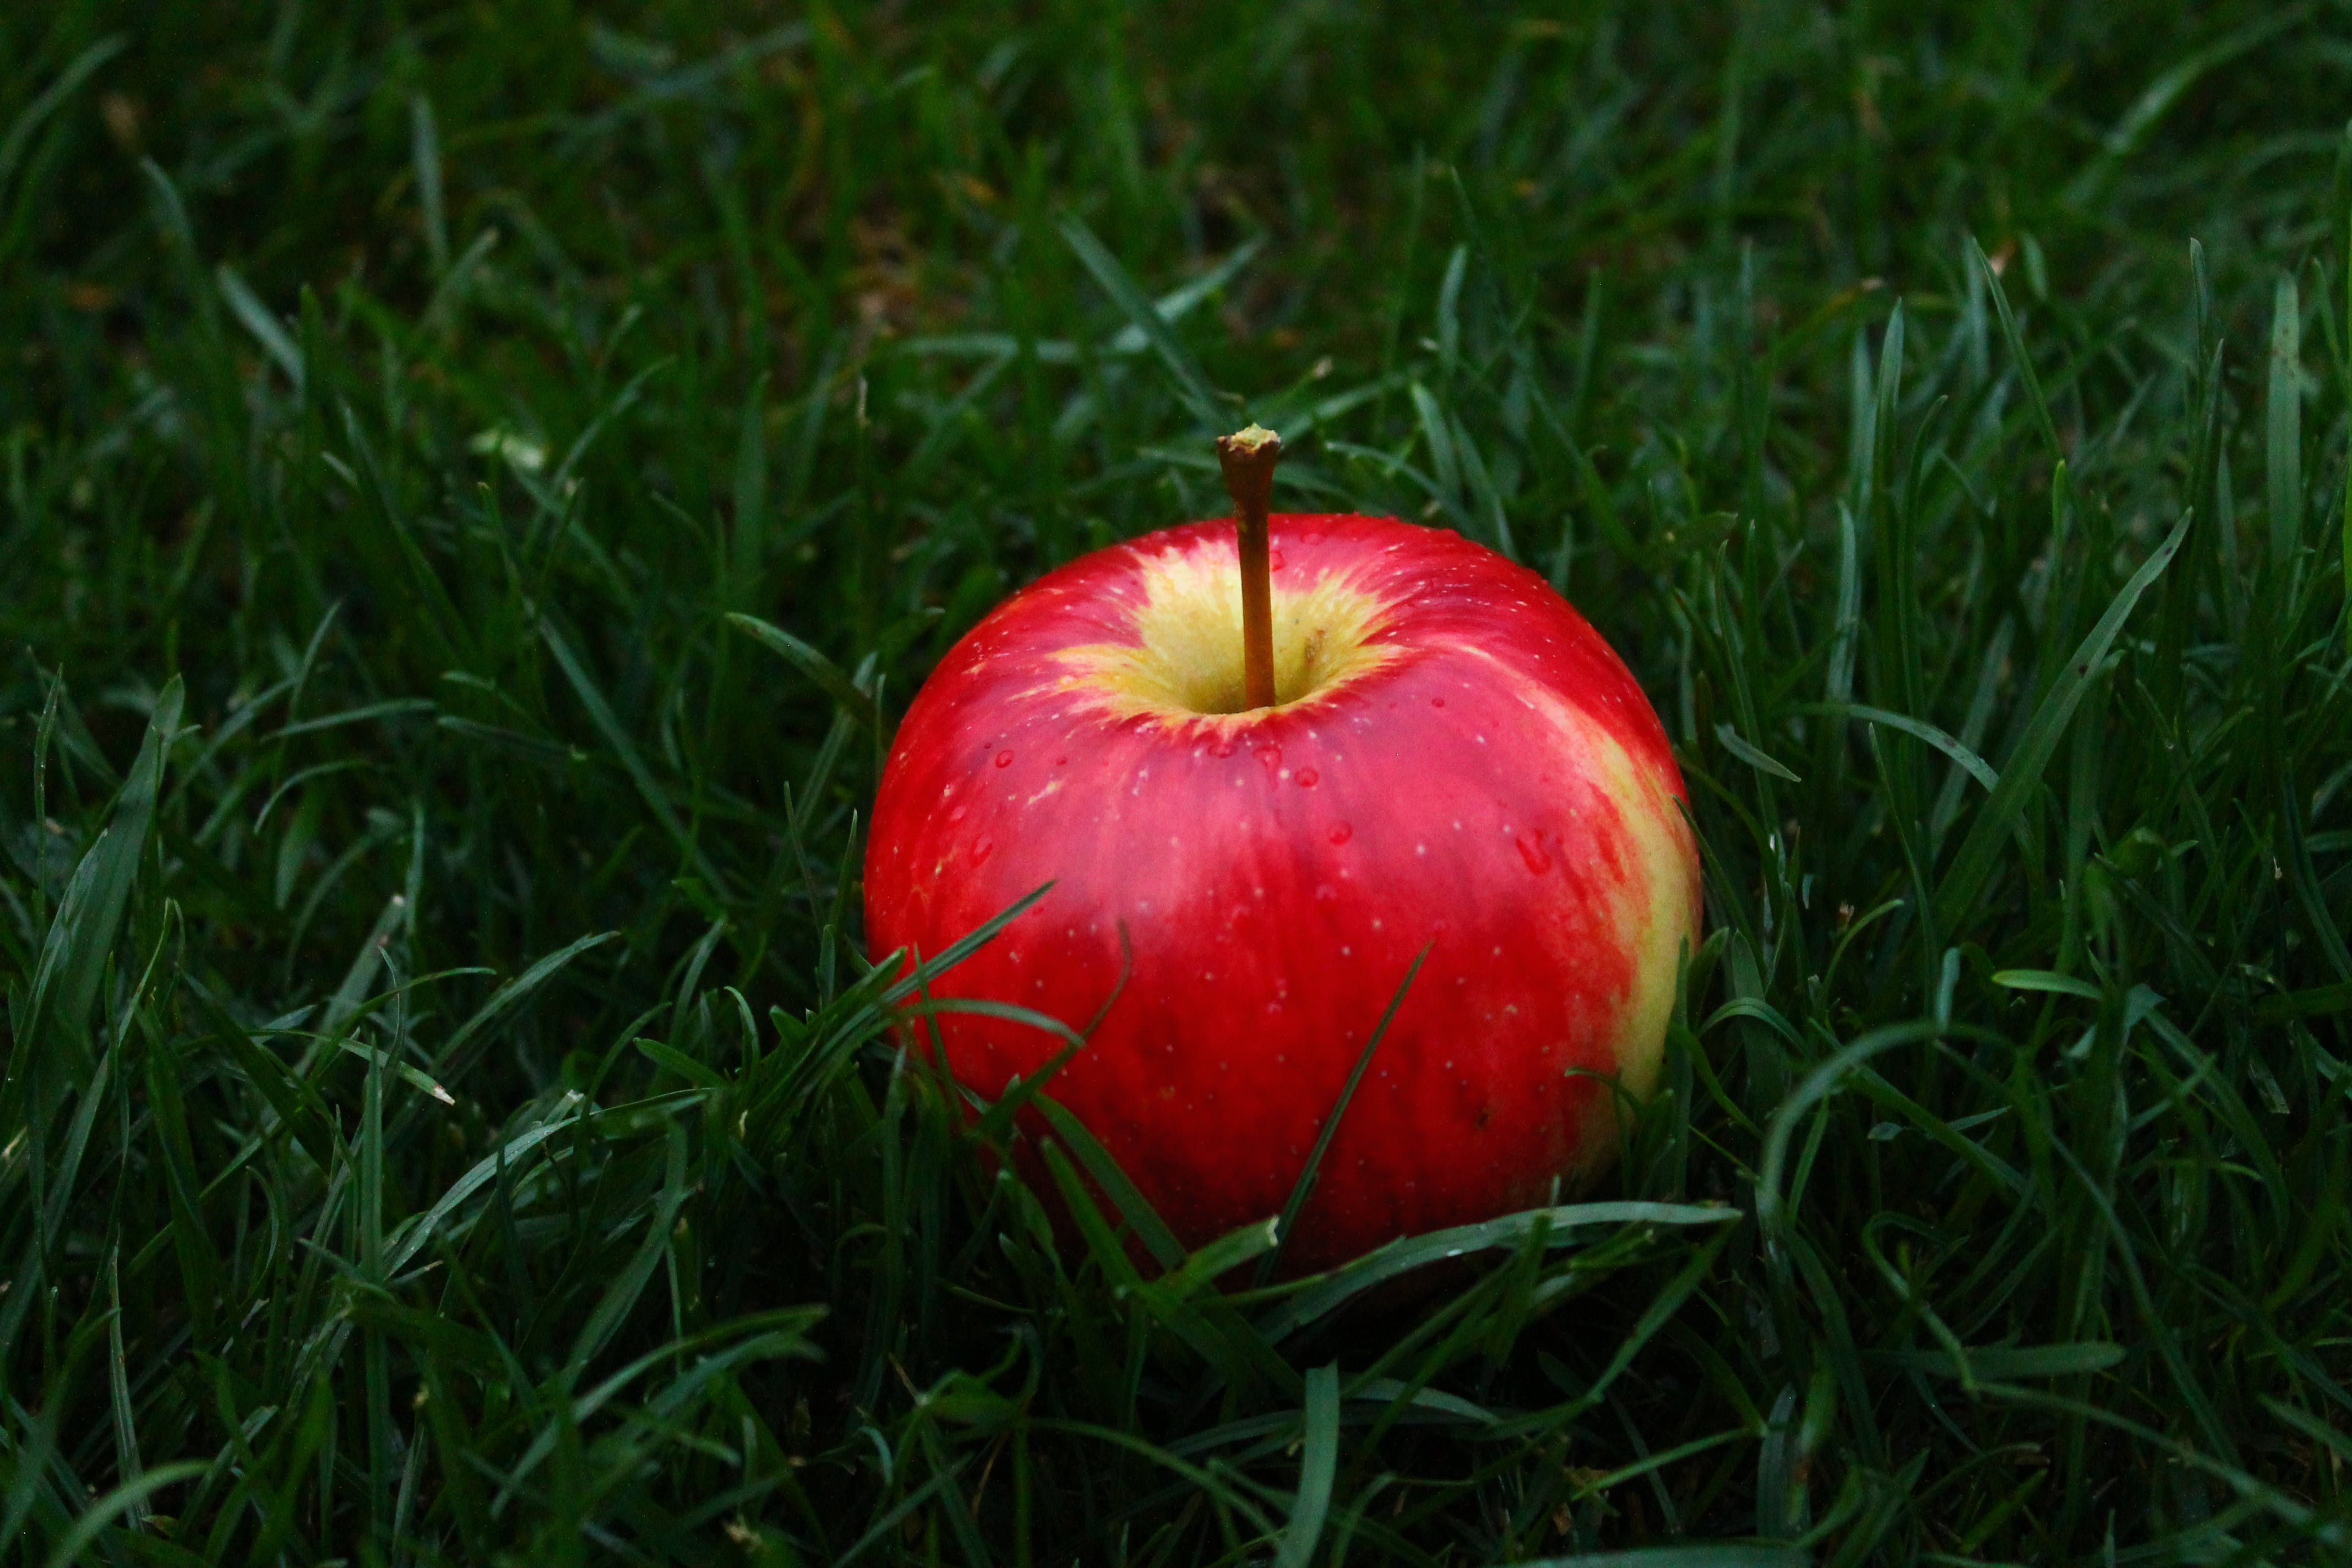 Red Apple Fruit on Grass